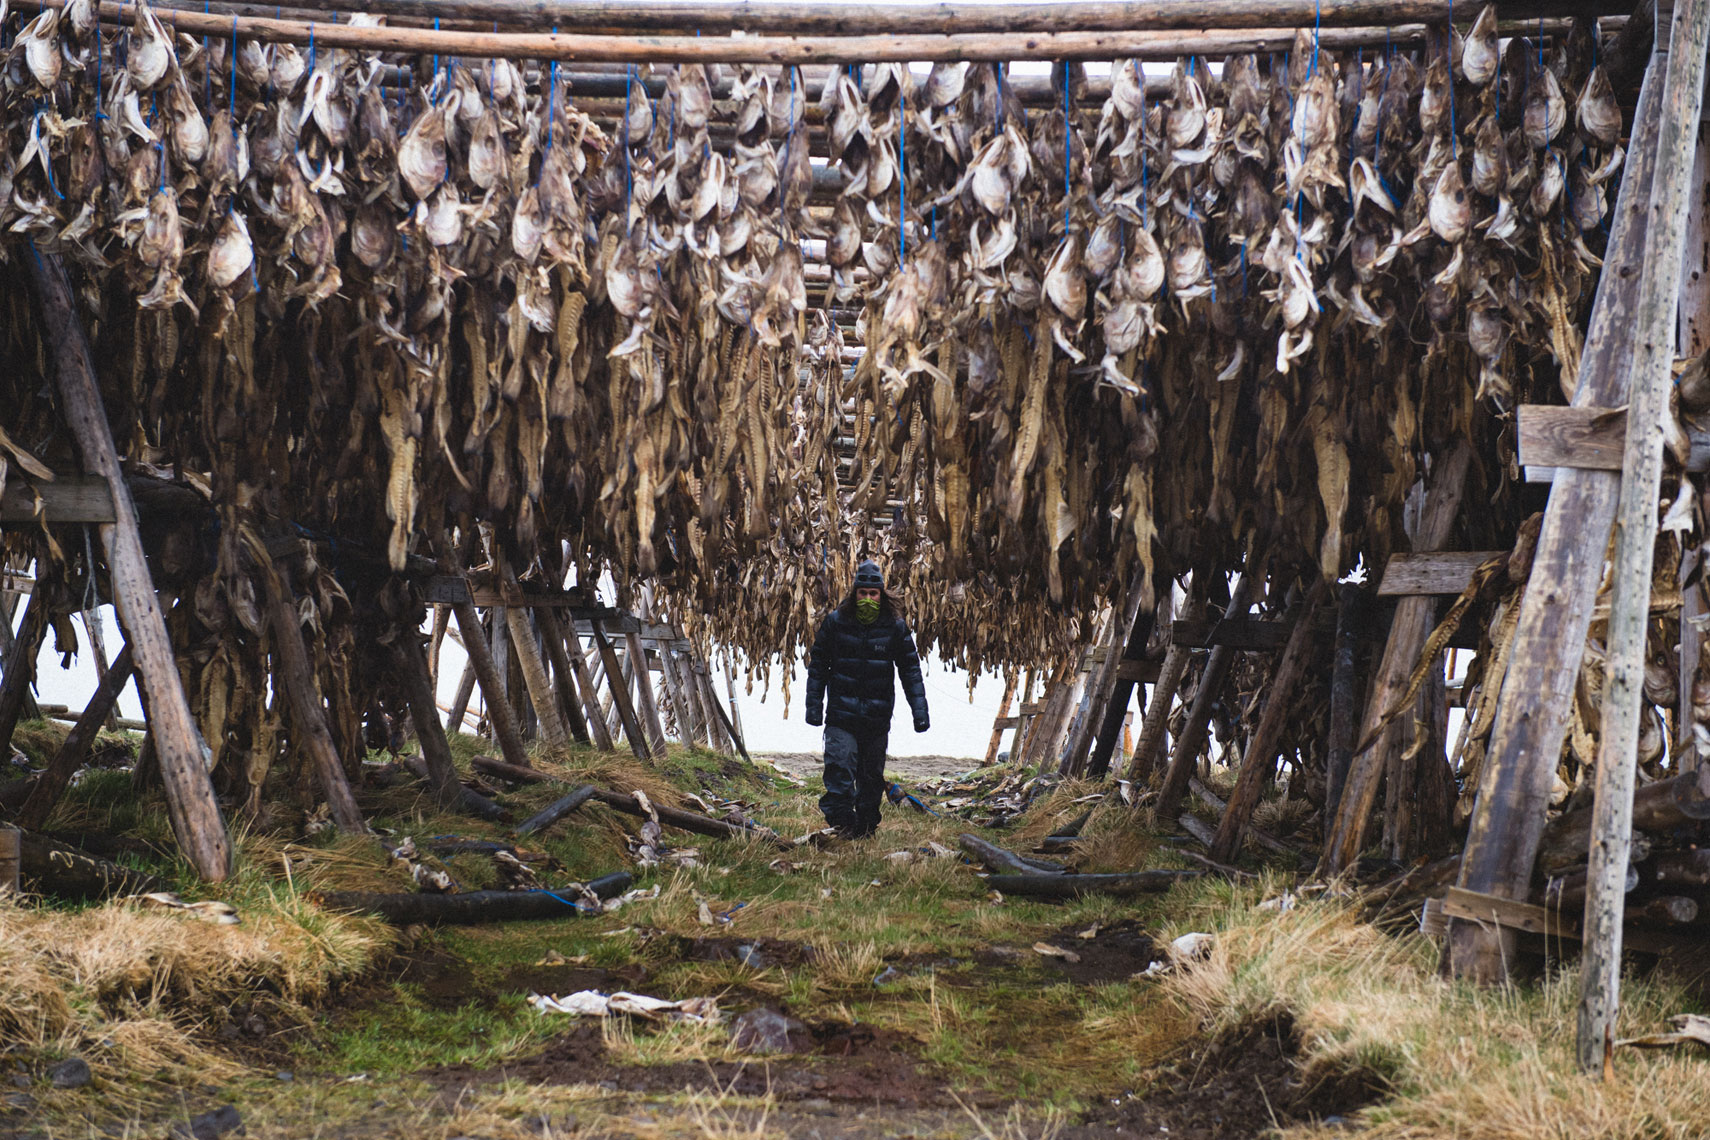 Dried Fish Photo: Mike Schirf